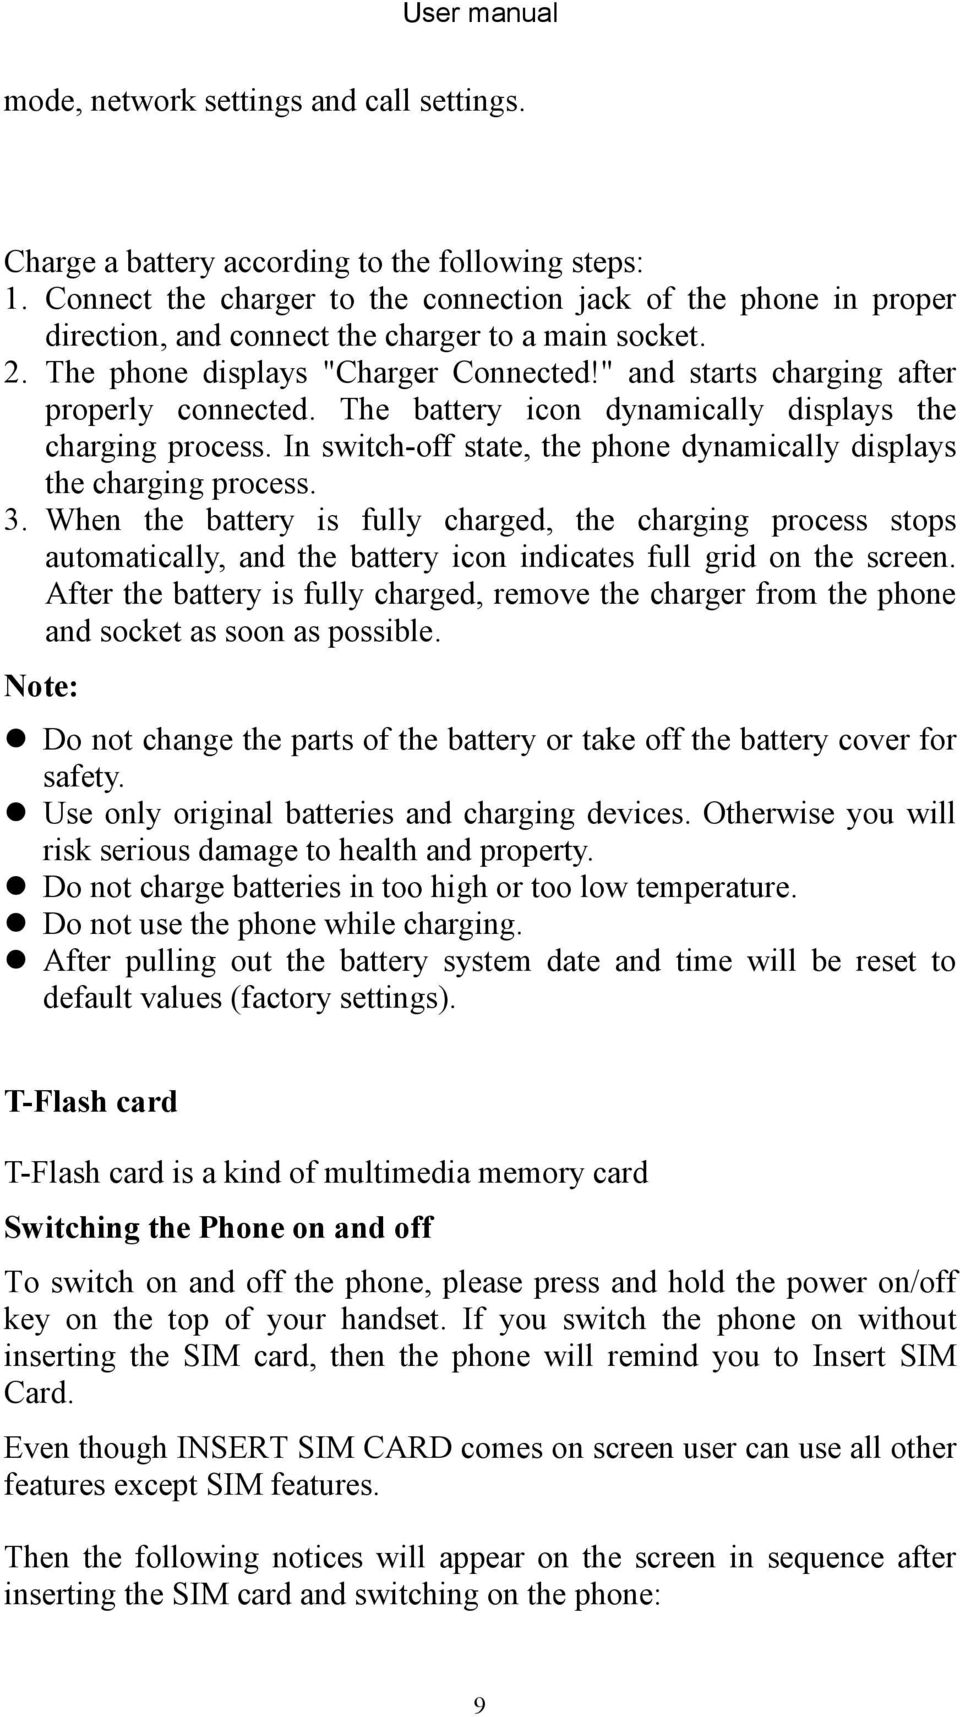 """ and starts charging after properly connected. The battery icon dynamically displays the charging process. In switch-off state, the phone dynamically displays the charging process. 3."